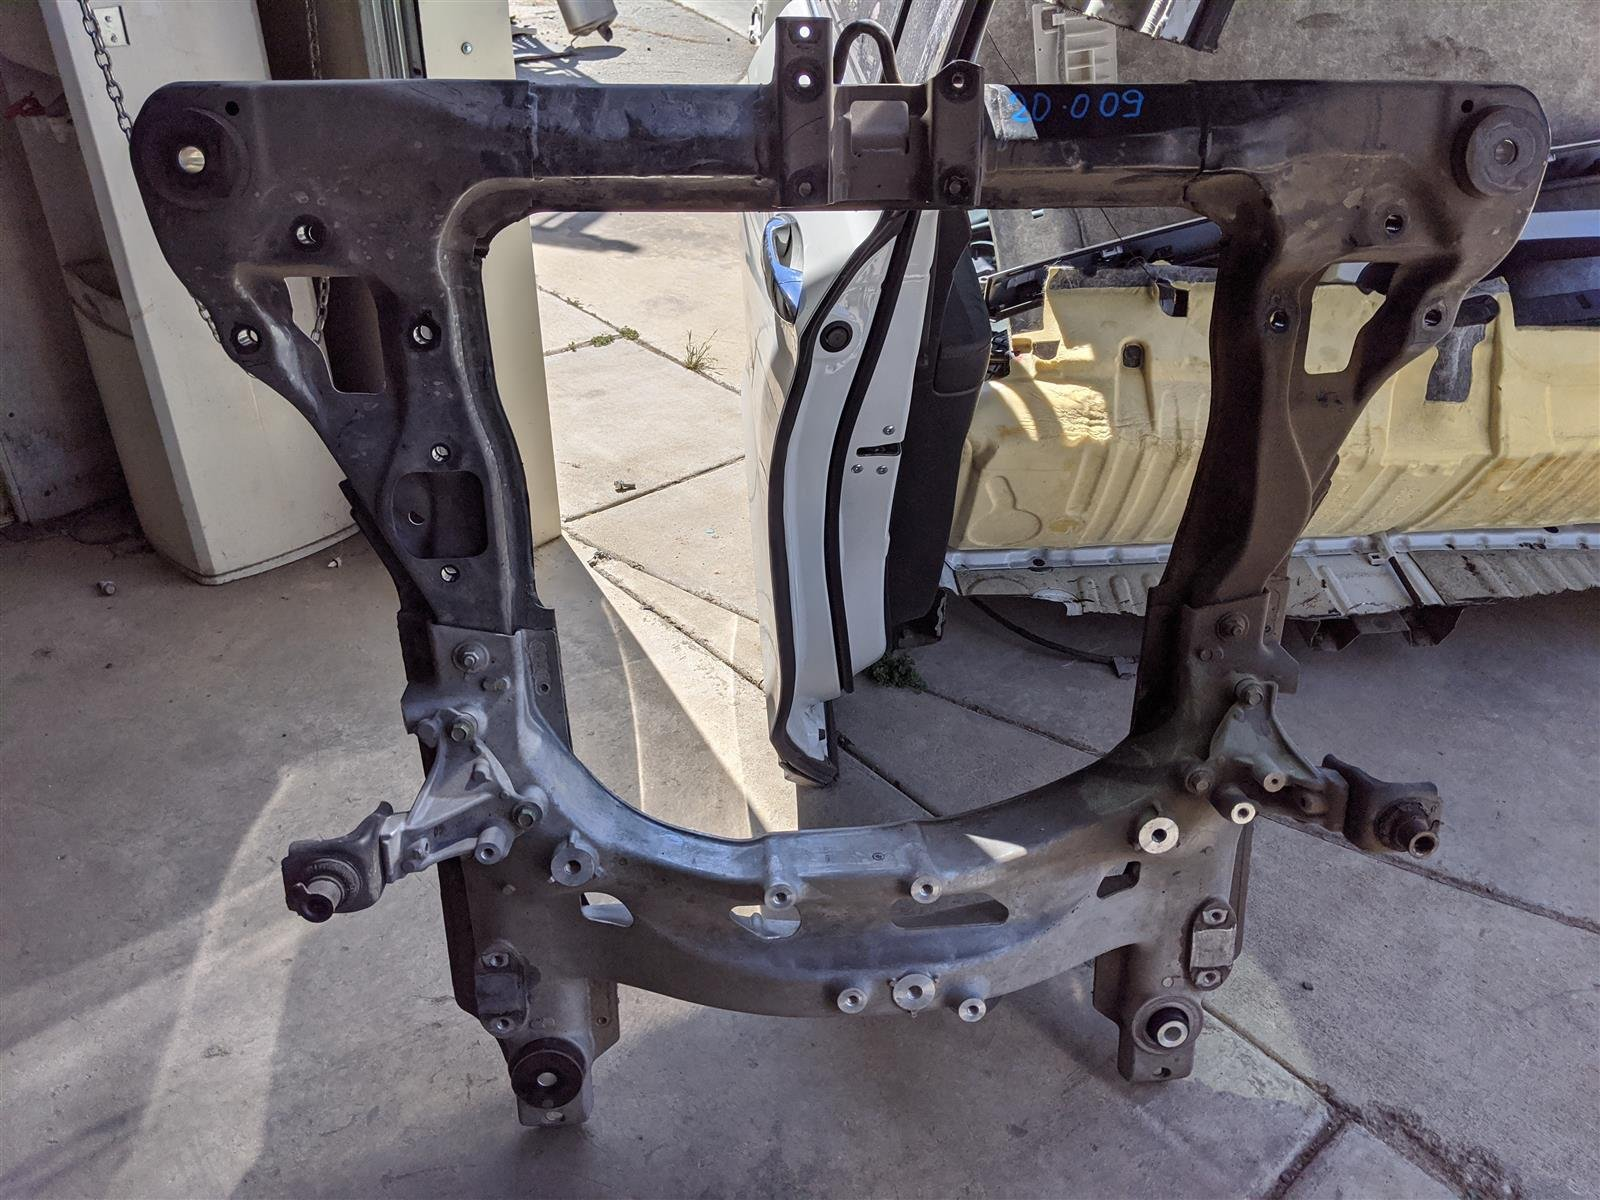 2017 Acura TLX 2.4l Front Subframe Engine Cradle Replacement